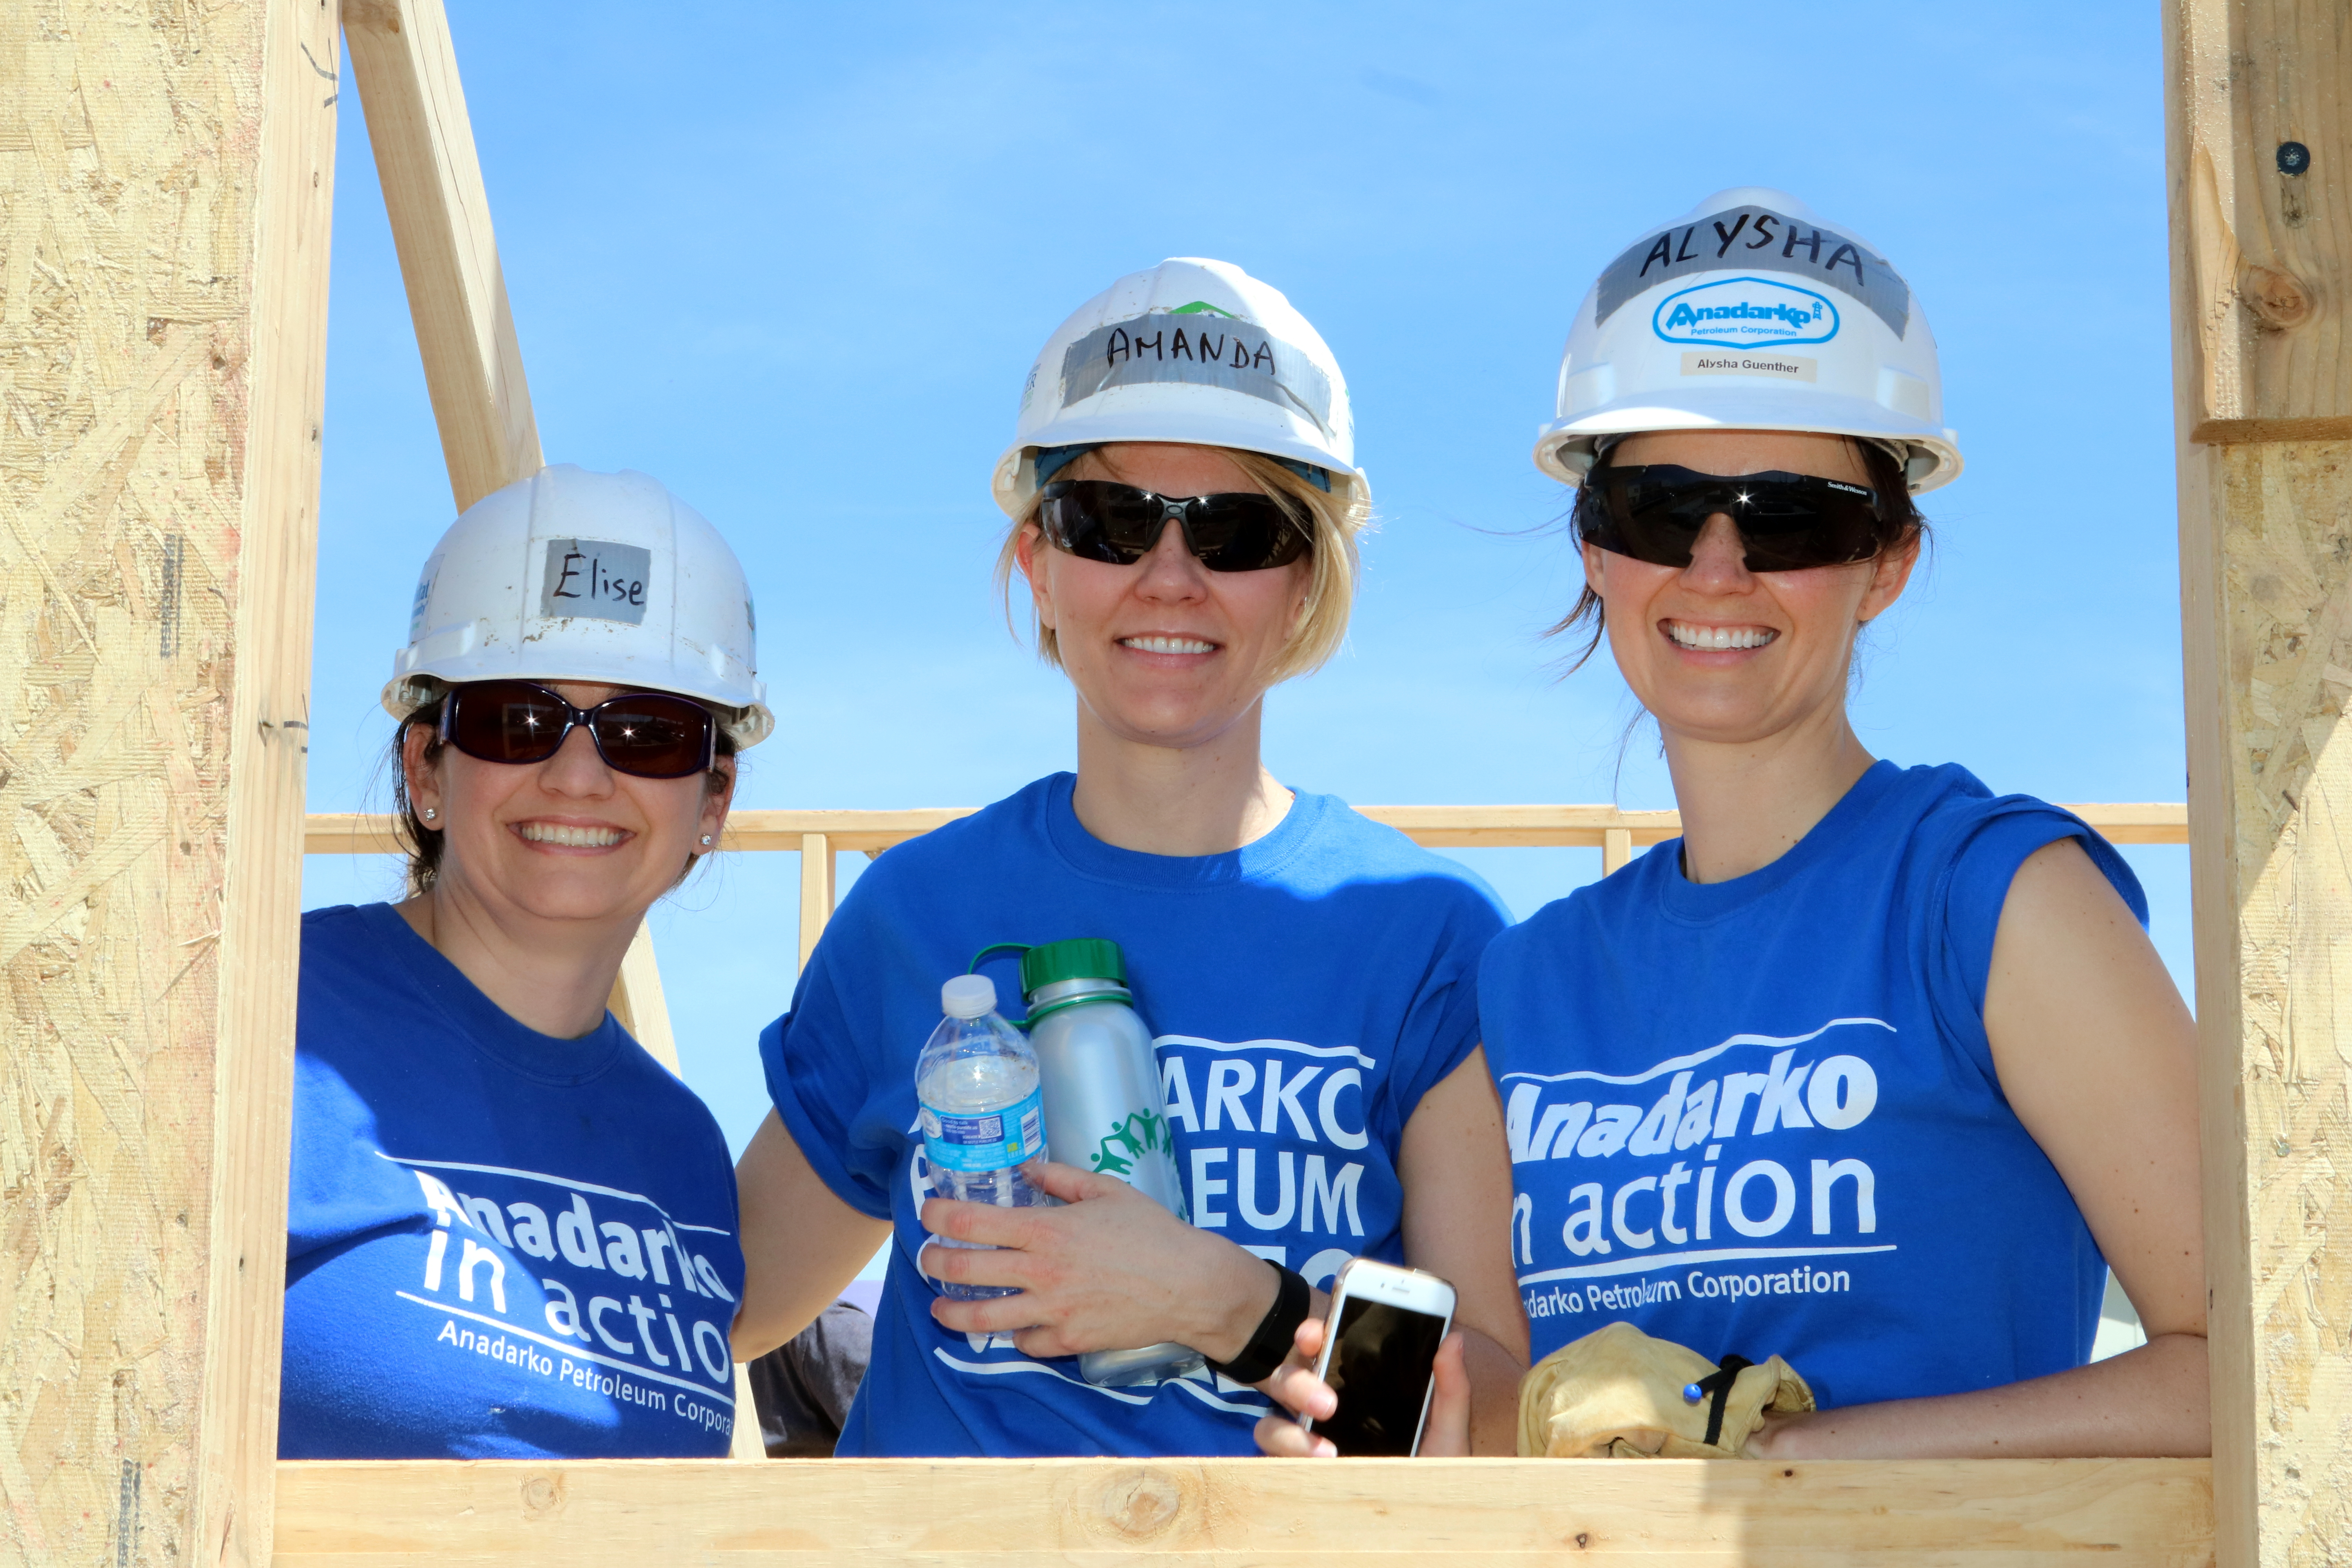 May 5th 2016 Habitat build-087.JPG